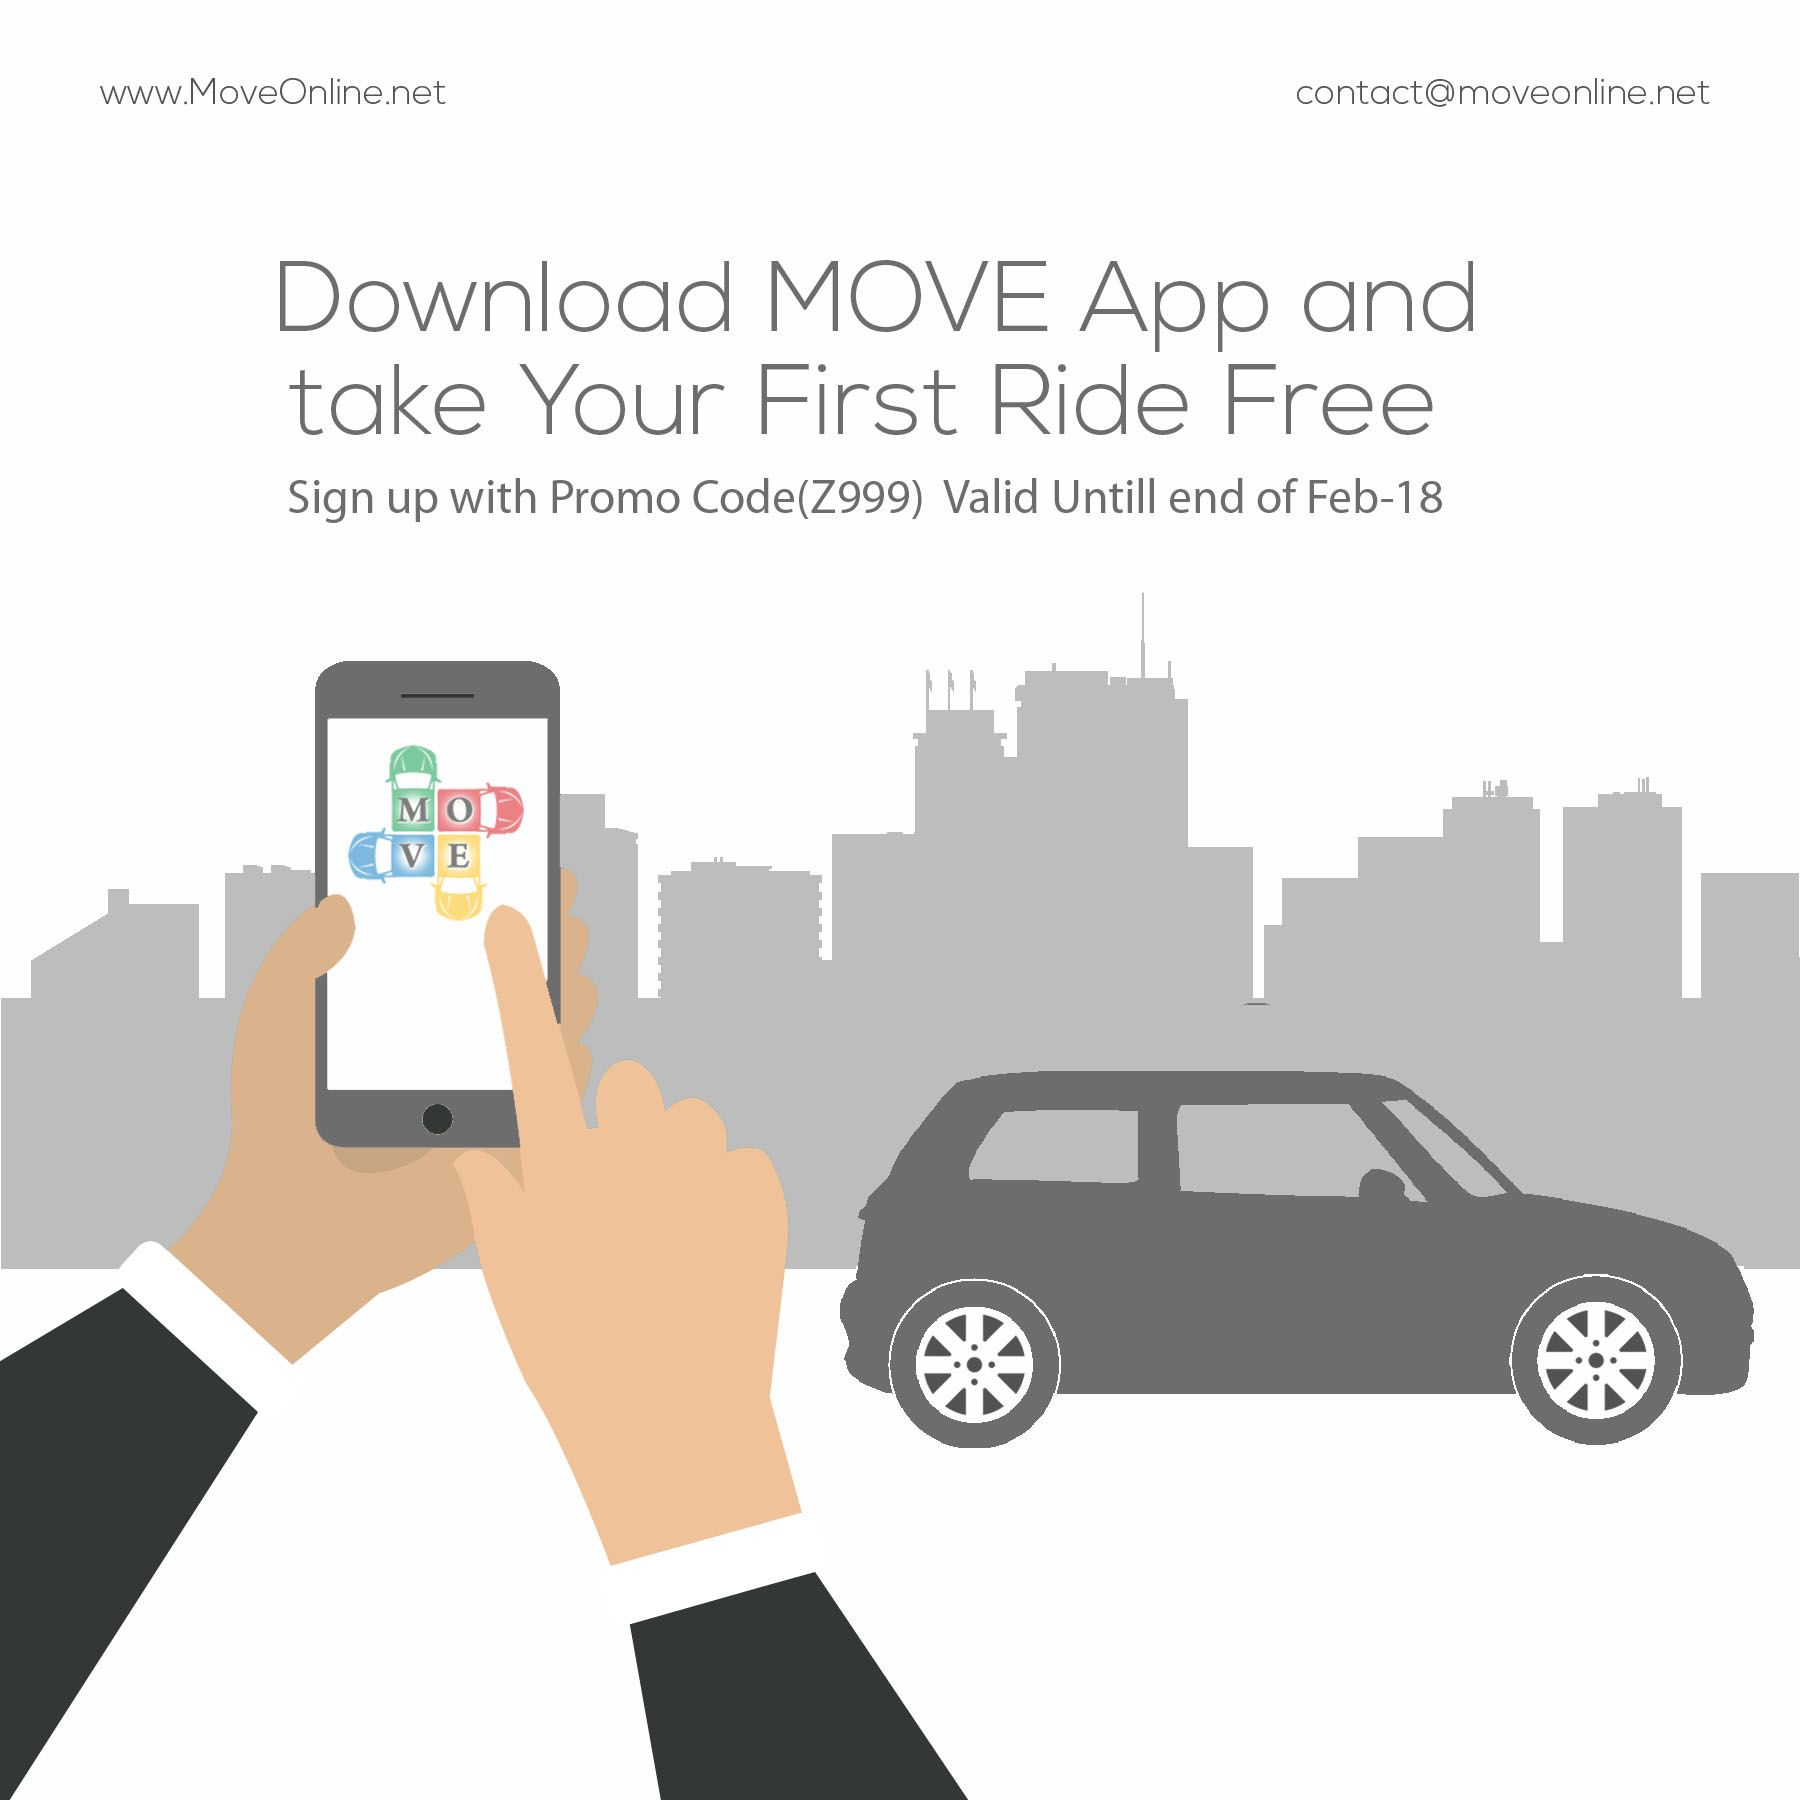 Get First Ride with Move Online Move Online is Online Cab